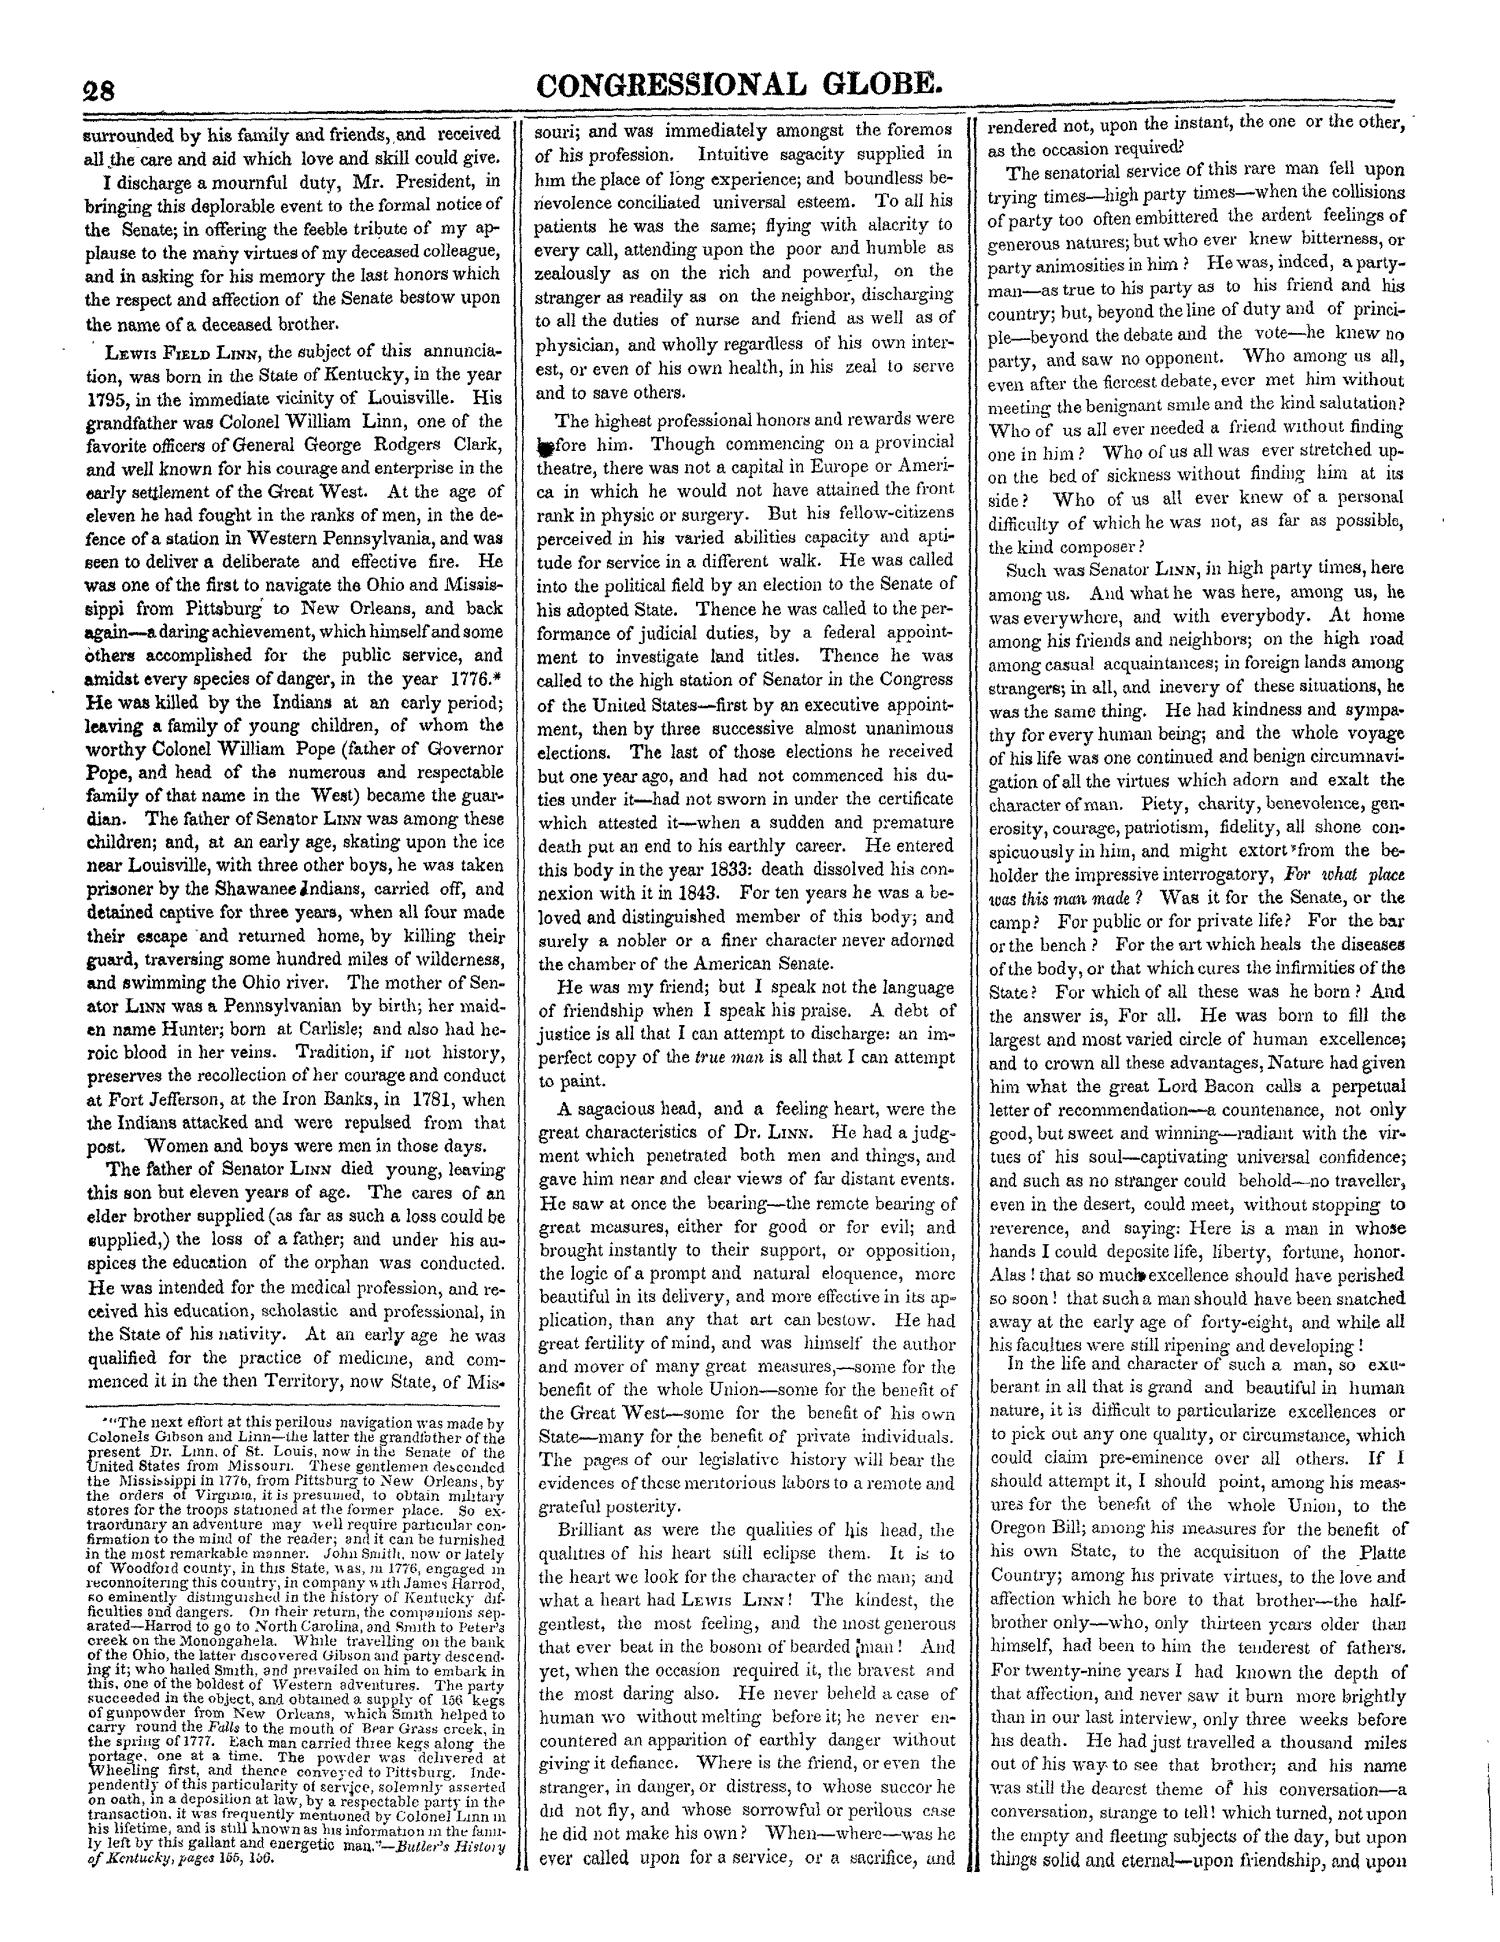 The Congressional Globe, Volume 13, Part 1: Twenty-Eighth Congress, First Session                                                                                                      28